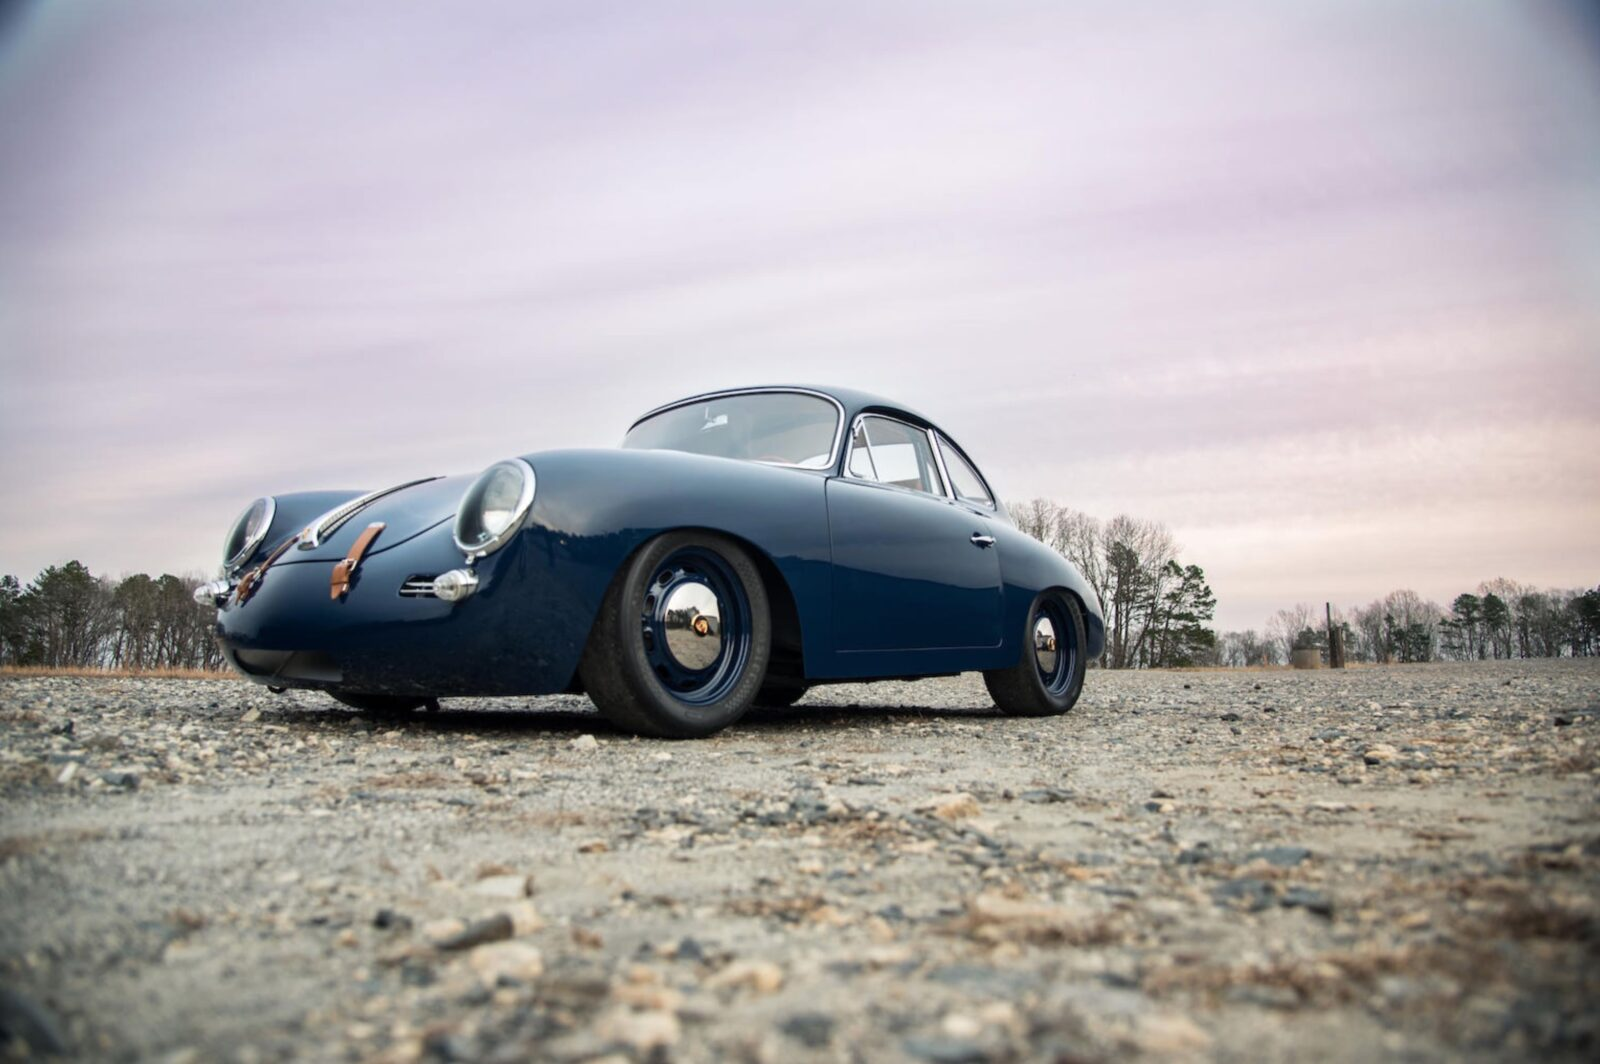 A 1964 Porsche 356 Outlaw with a 236 HP 2 8 Liter Flat-6